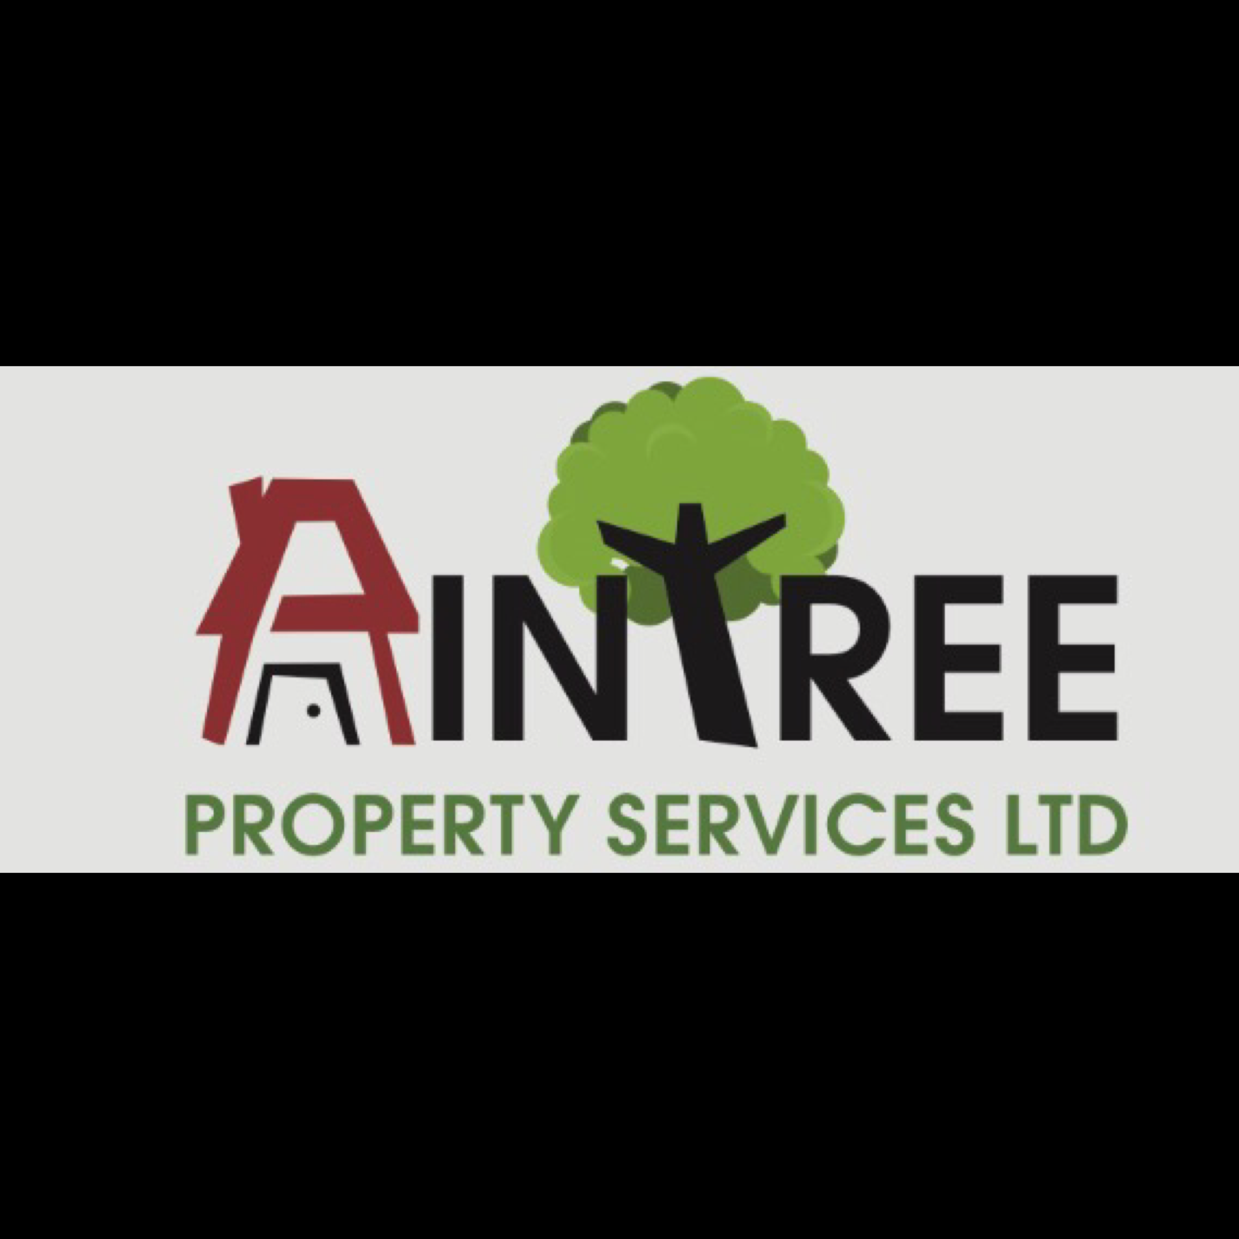 Aintree Property Services Ltd